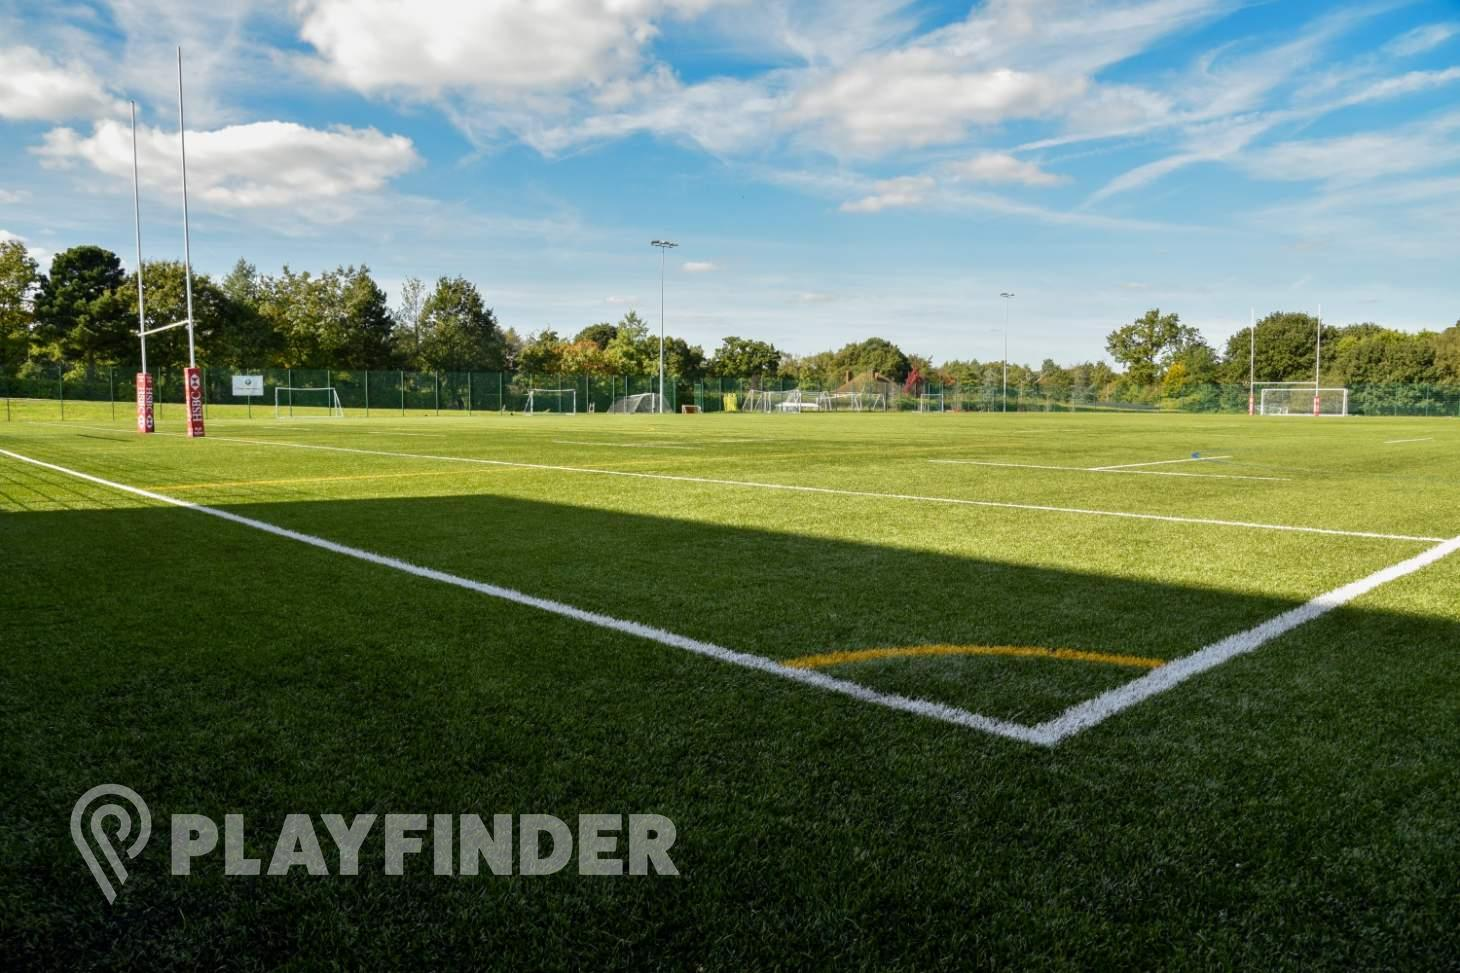 Ravens Wood School 11 a side | 3G Astroturf football pitch